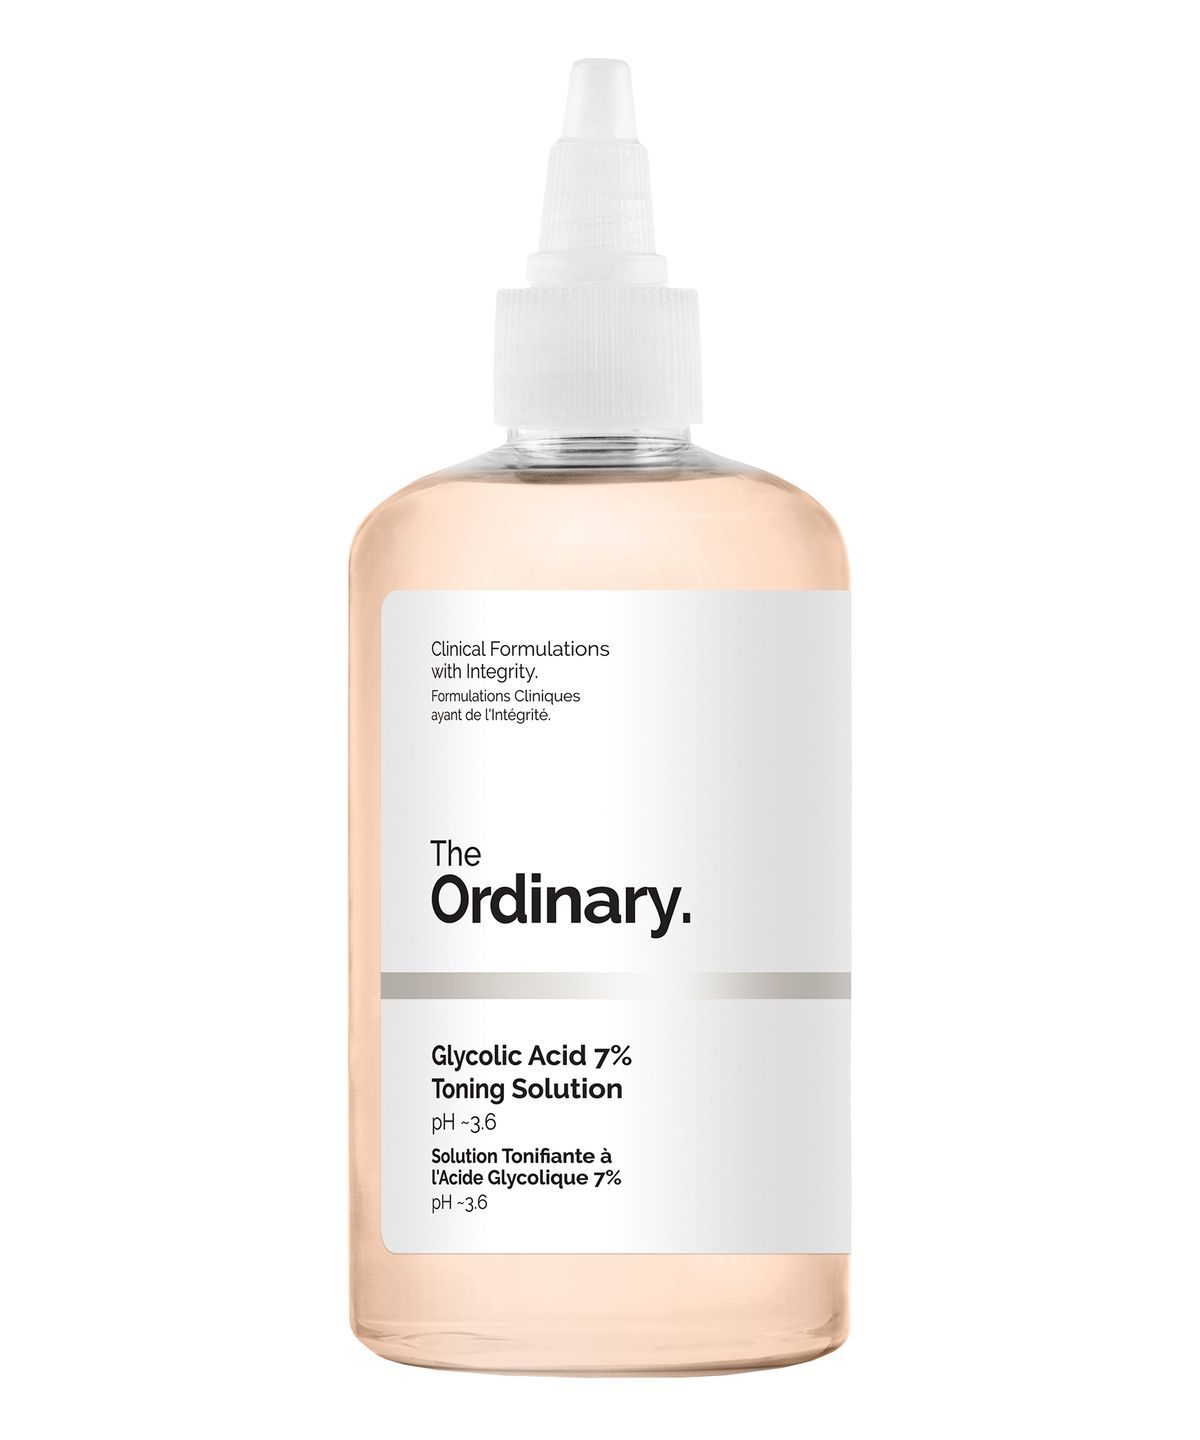 The Ordinary Glycolic Acid 7% Toning Solution тоник для лица 240мл